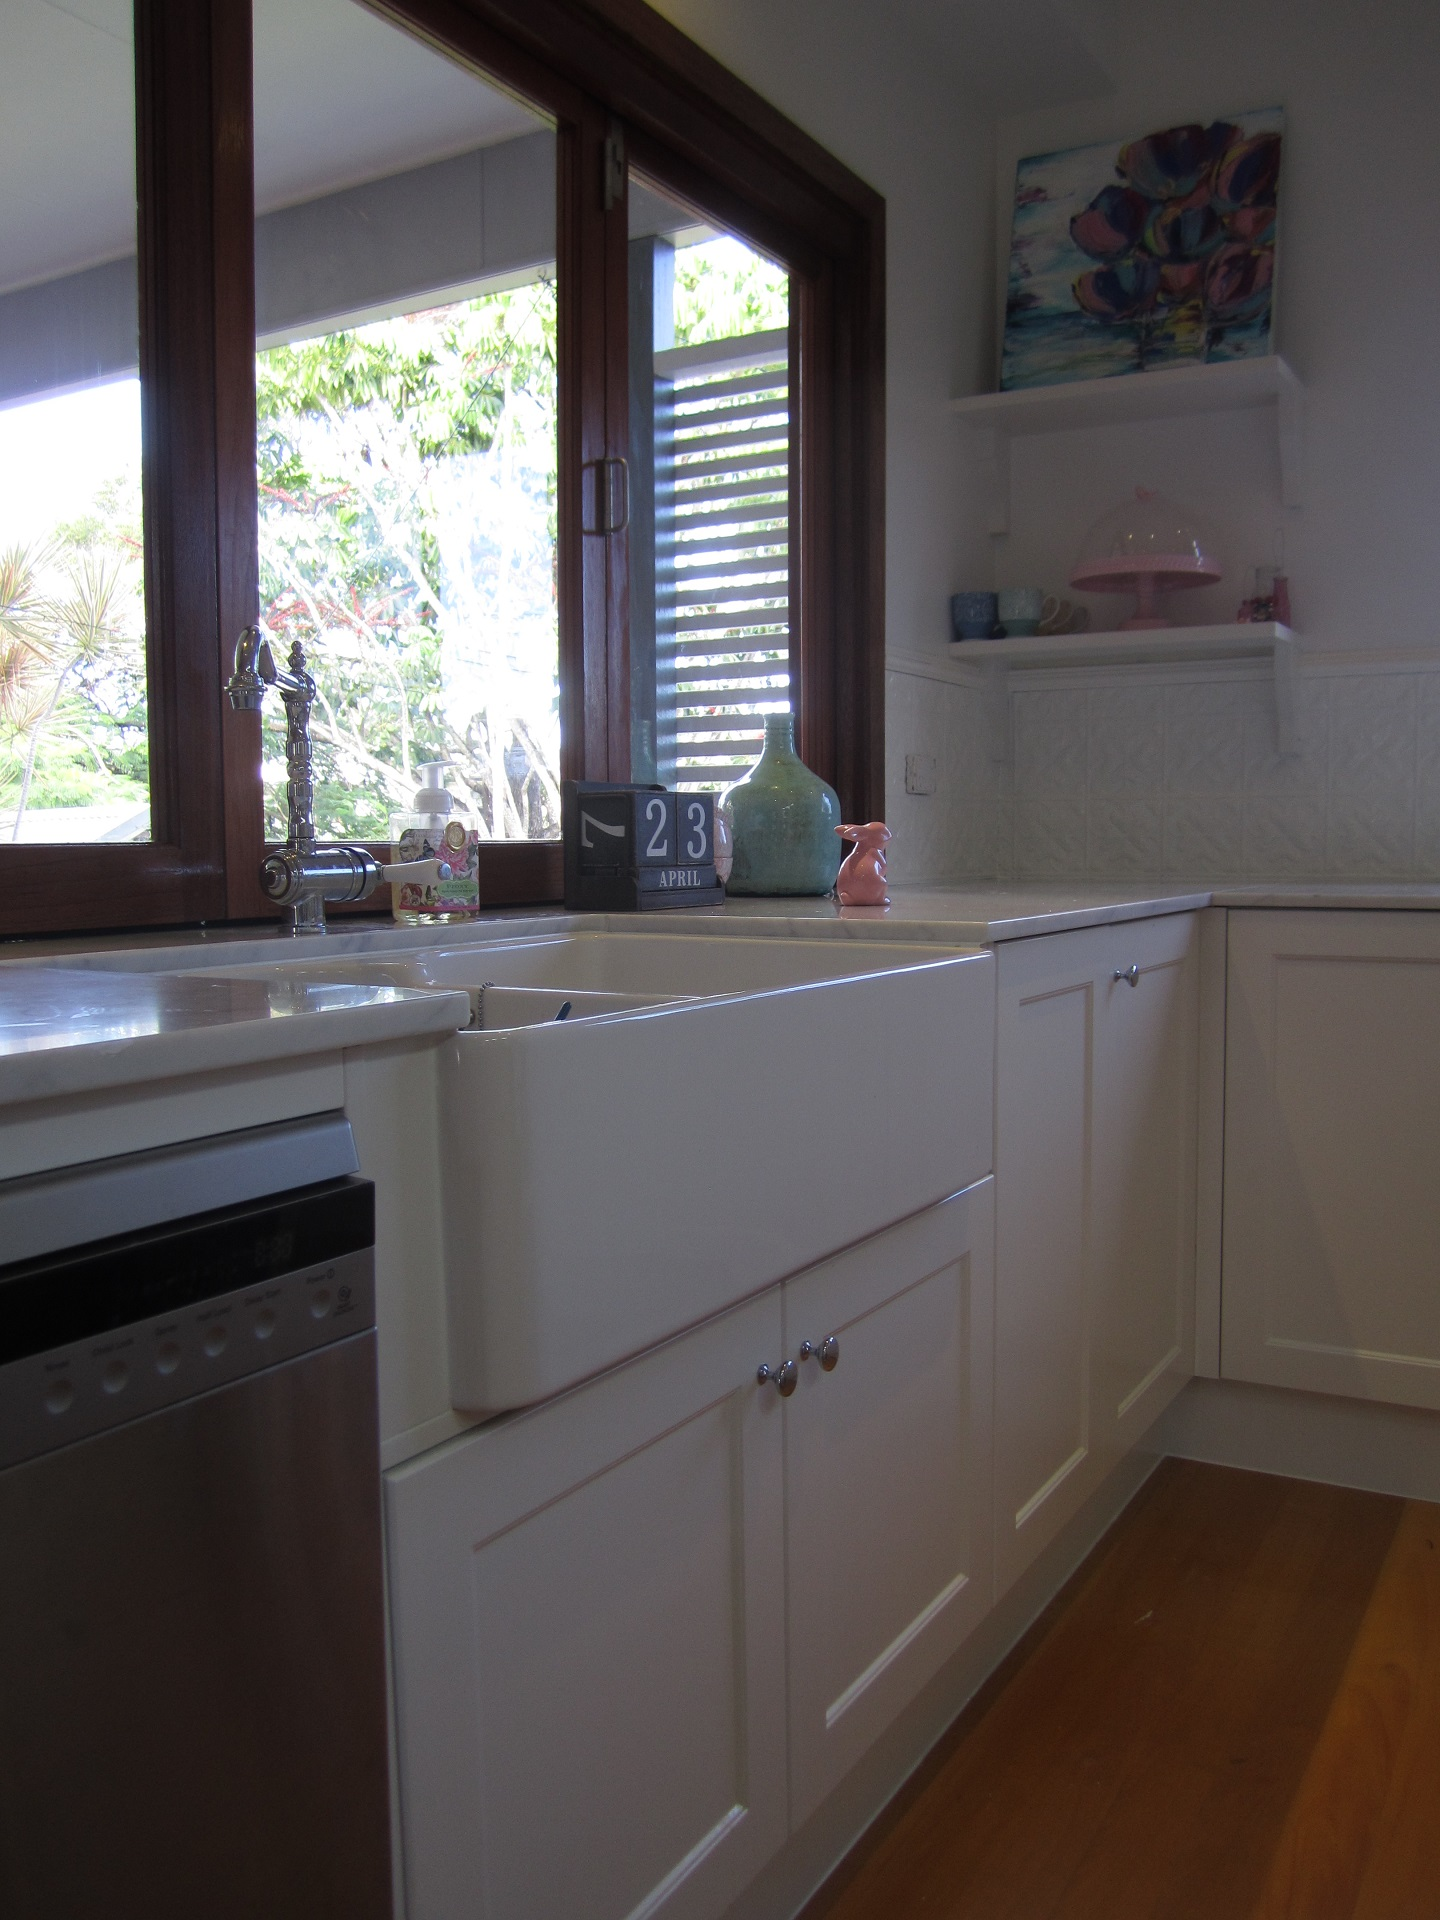 Brisbane Kitchen Design Garate Graceville Traditional KitchenRenovation Butlers Sink(6)